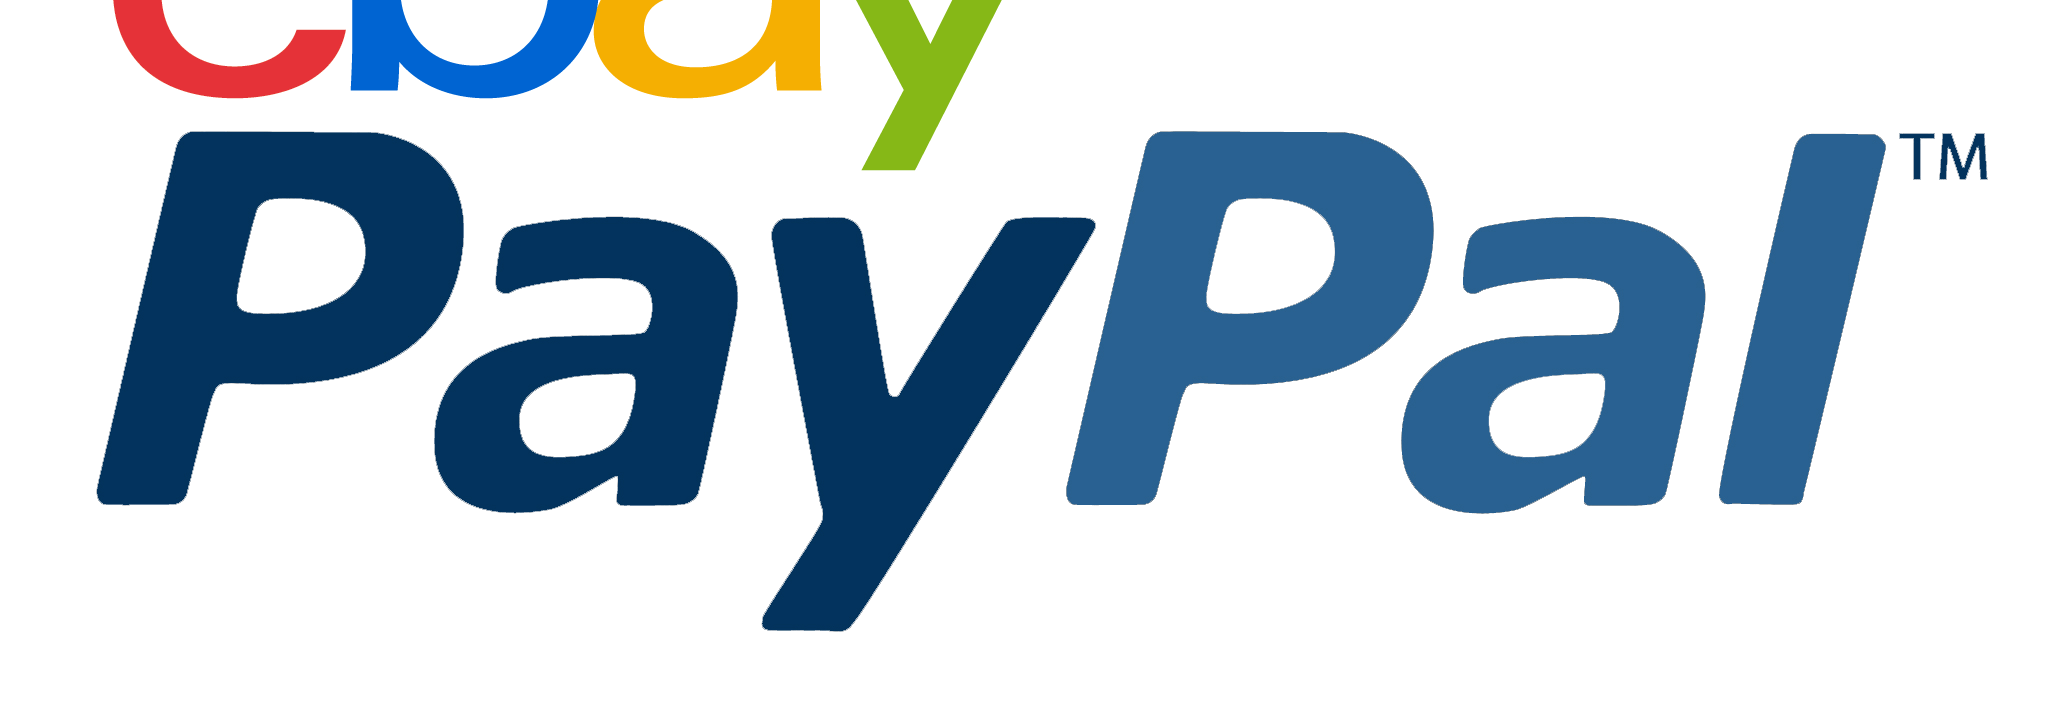 eBay To Spin Off PayPal So They Can Compete Against Each Other For Worst Company Title